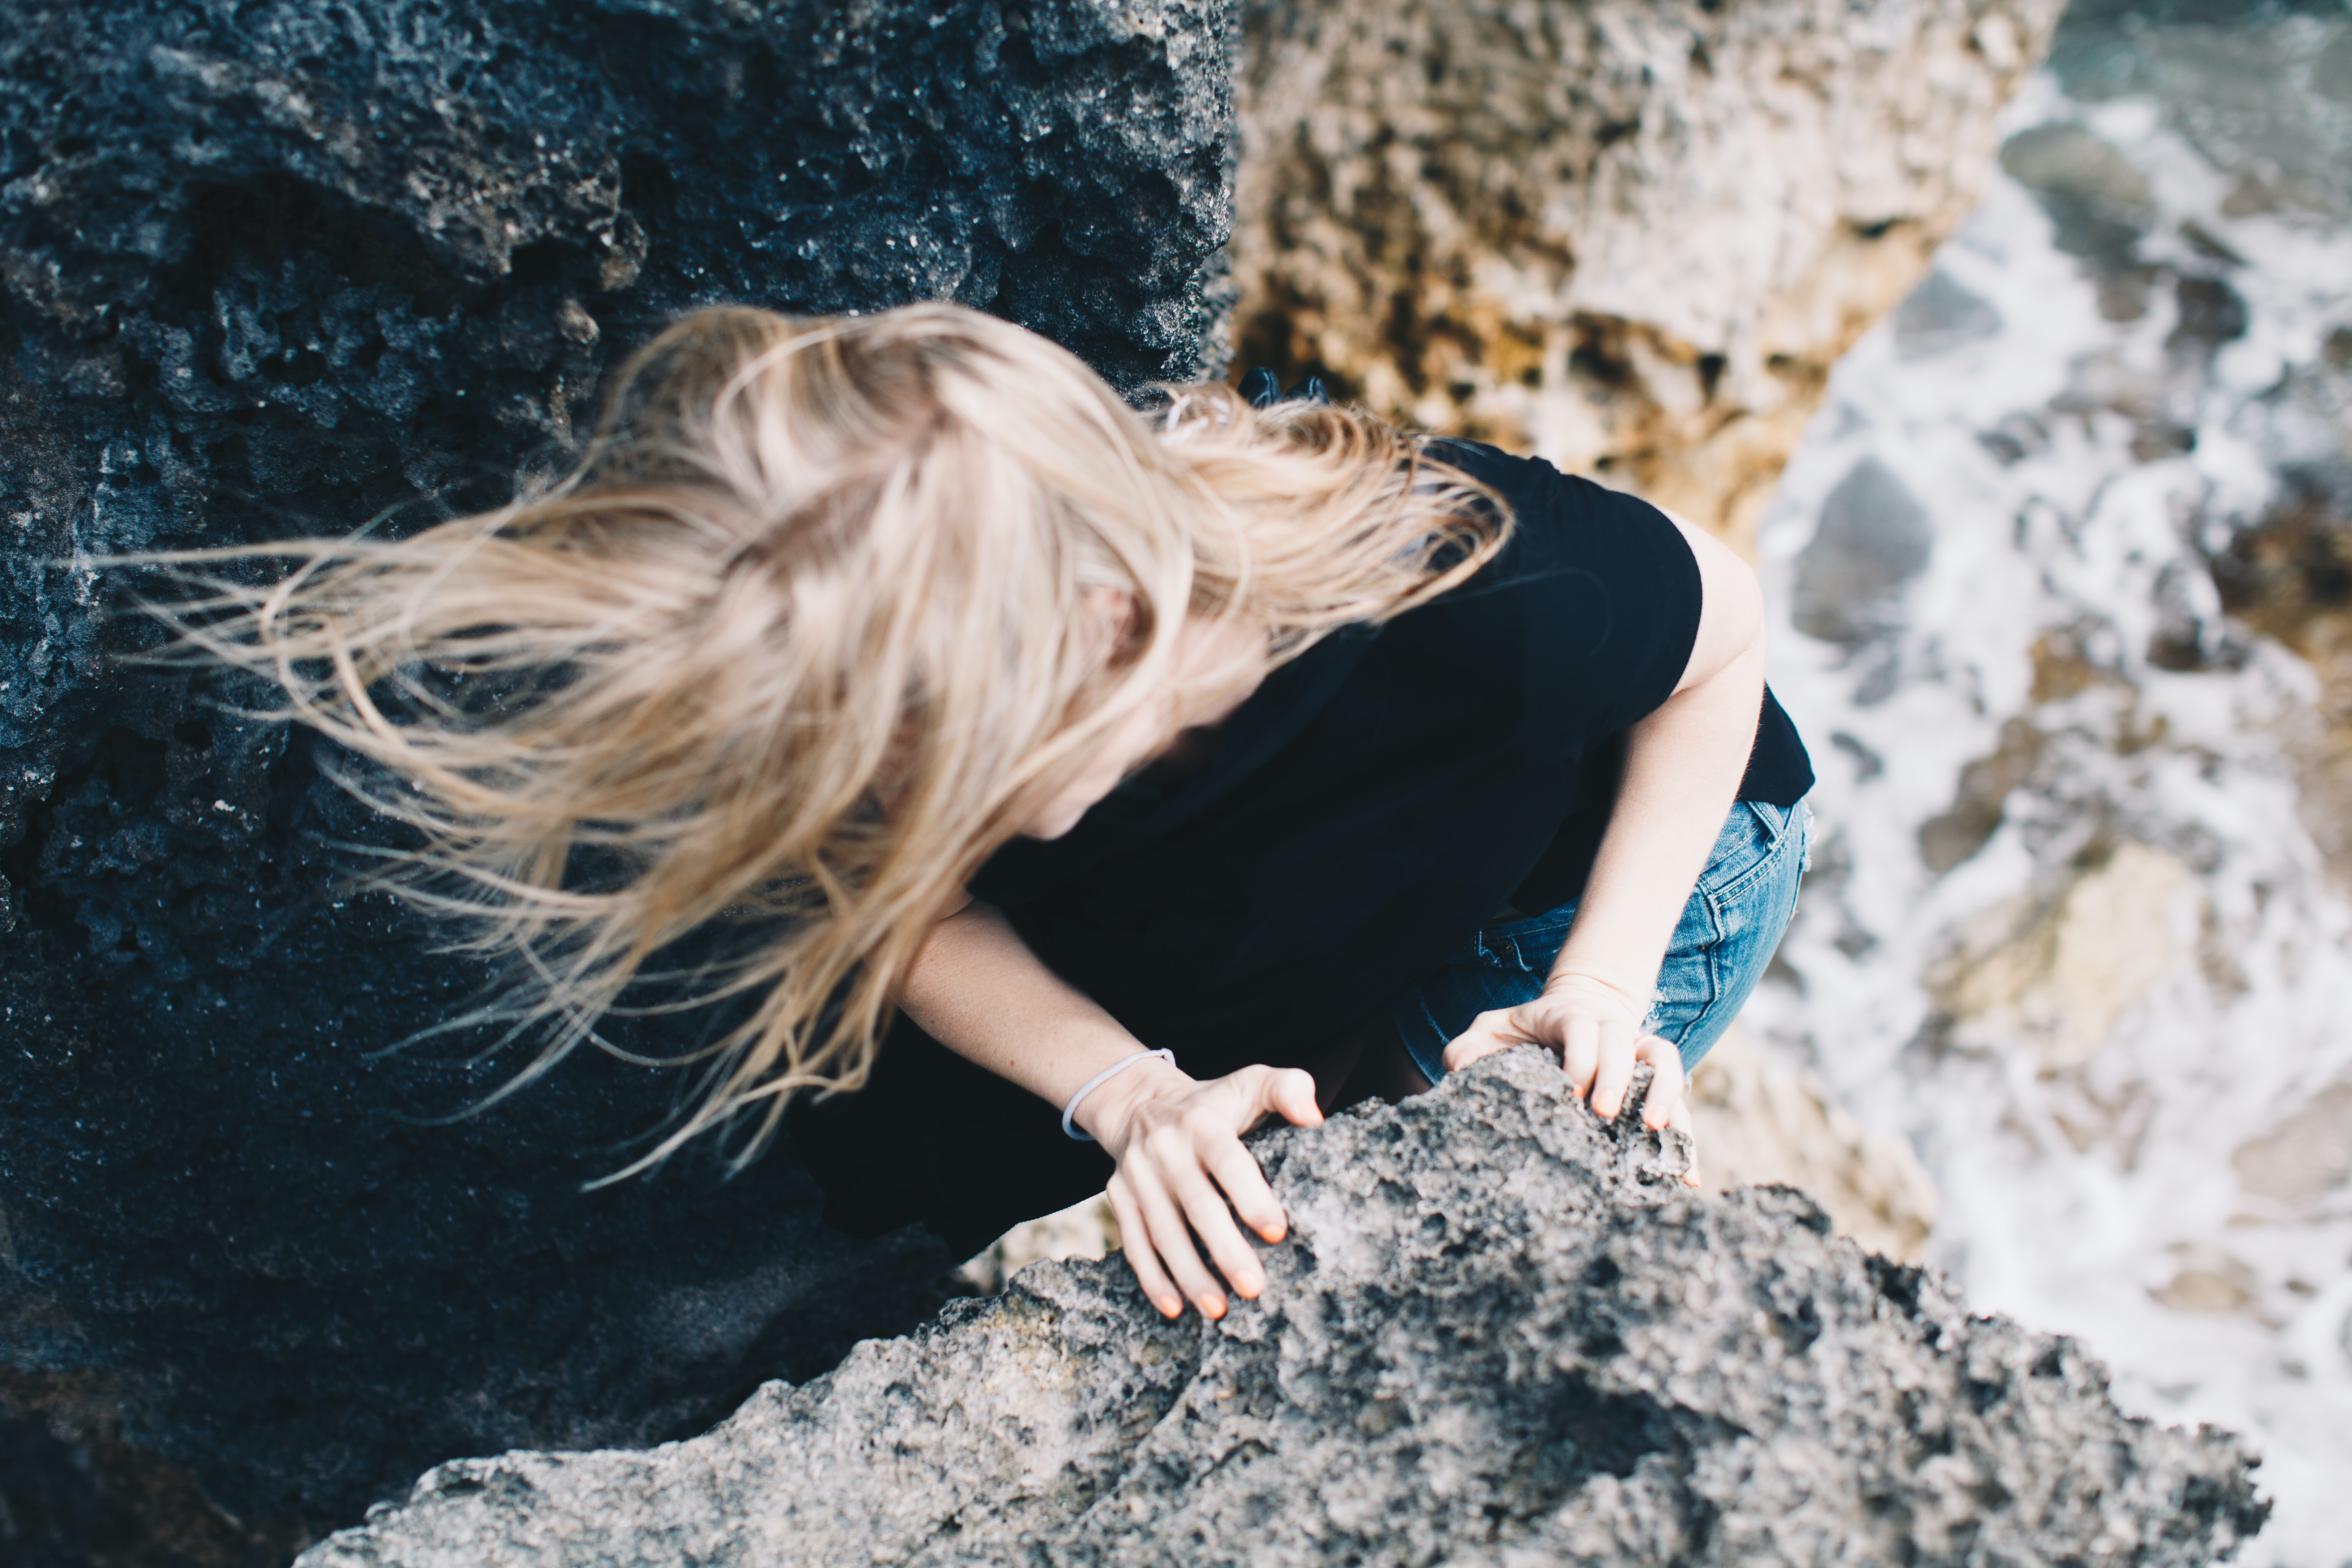 woman climbing on cliff near body of water